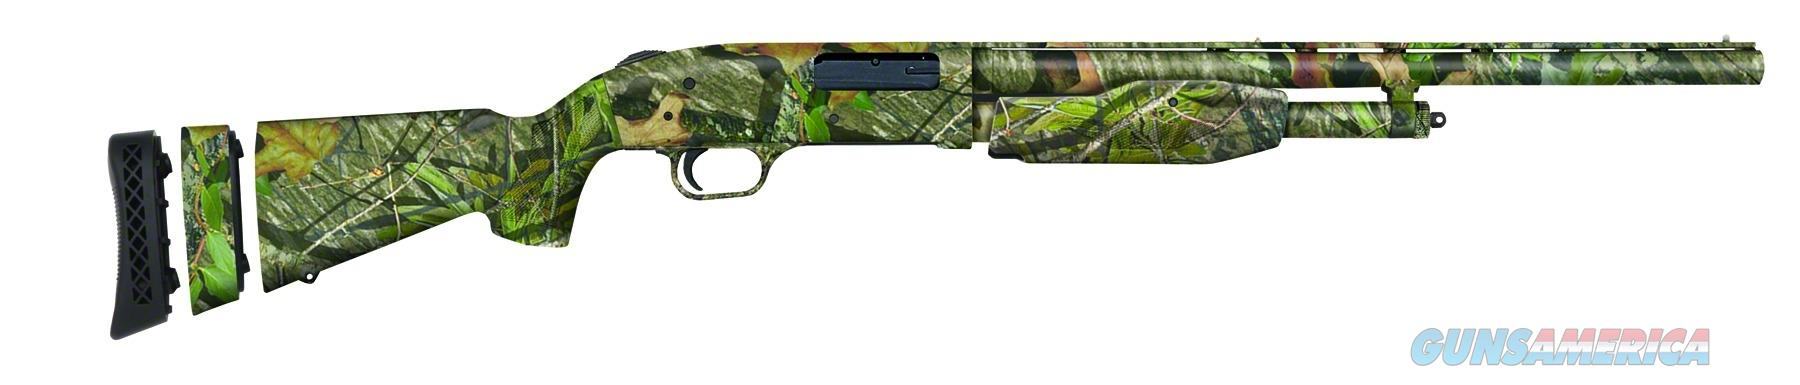 "MOSSBERG FIREARMS 510MINI SBNTM 20GA 18.5"" 50494  Guns > Shotguns > Mossberg Shotguns > Pump > Sporting"